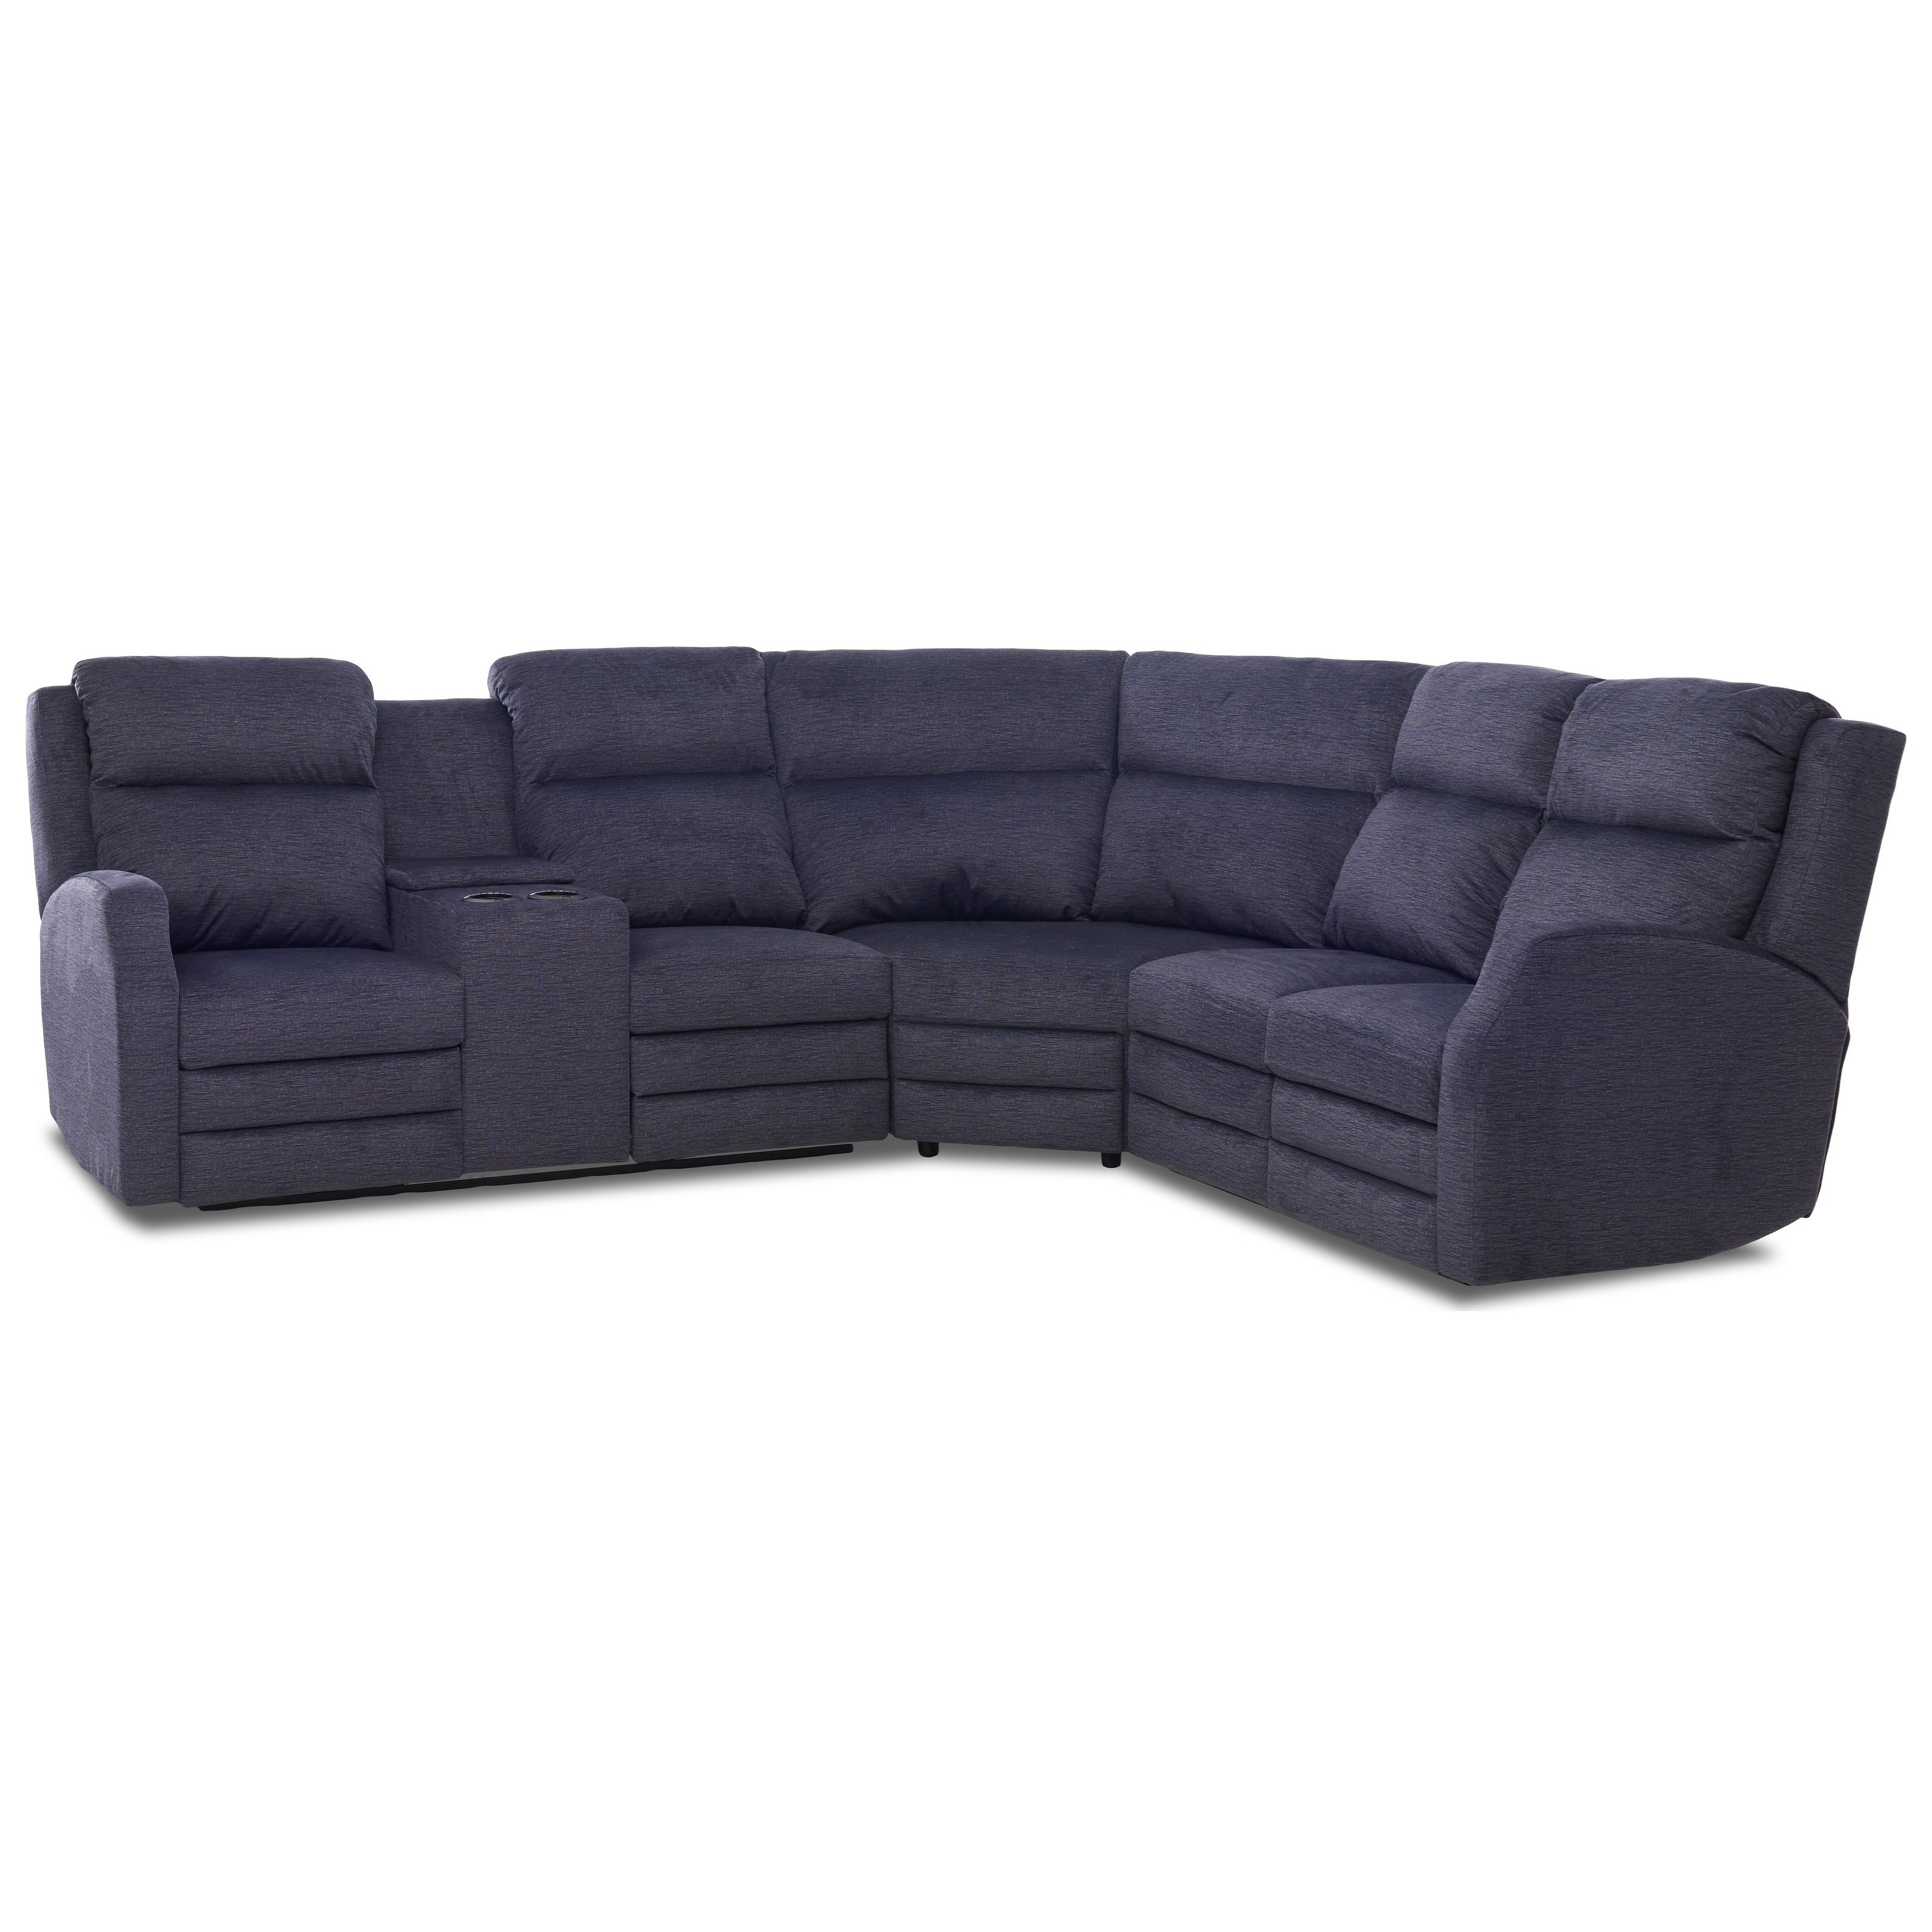 Kamiah 4 Seat Pwr Reclining Sect Sofa w/ Pwr Head by Klaussner at Johnny Janosik